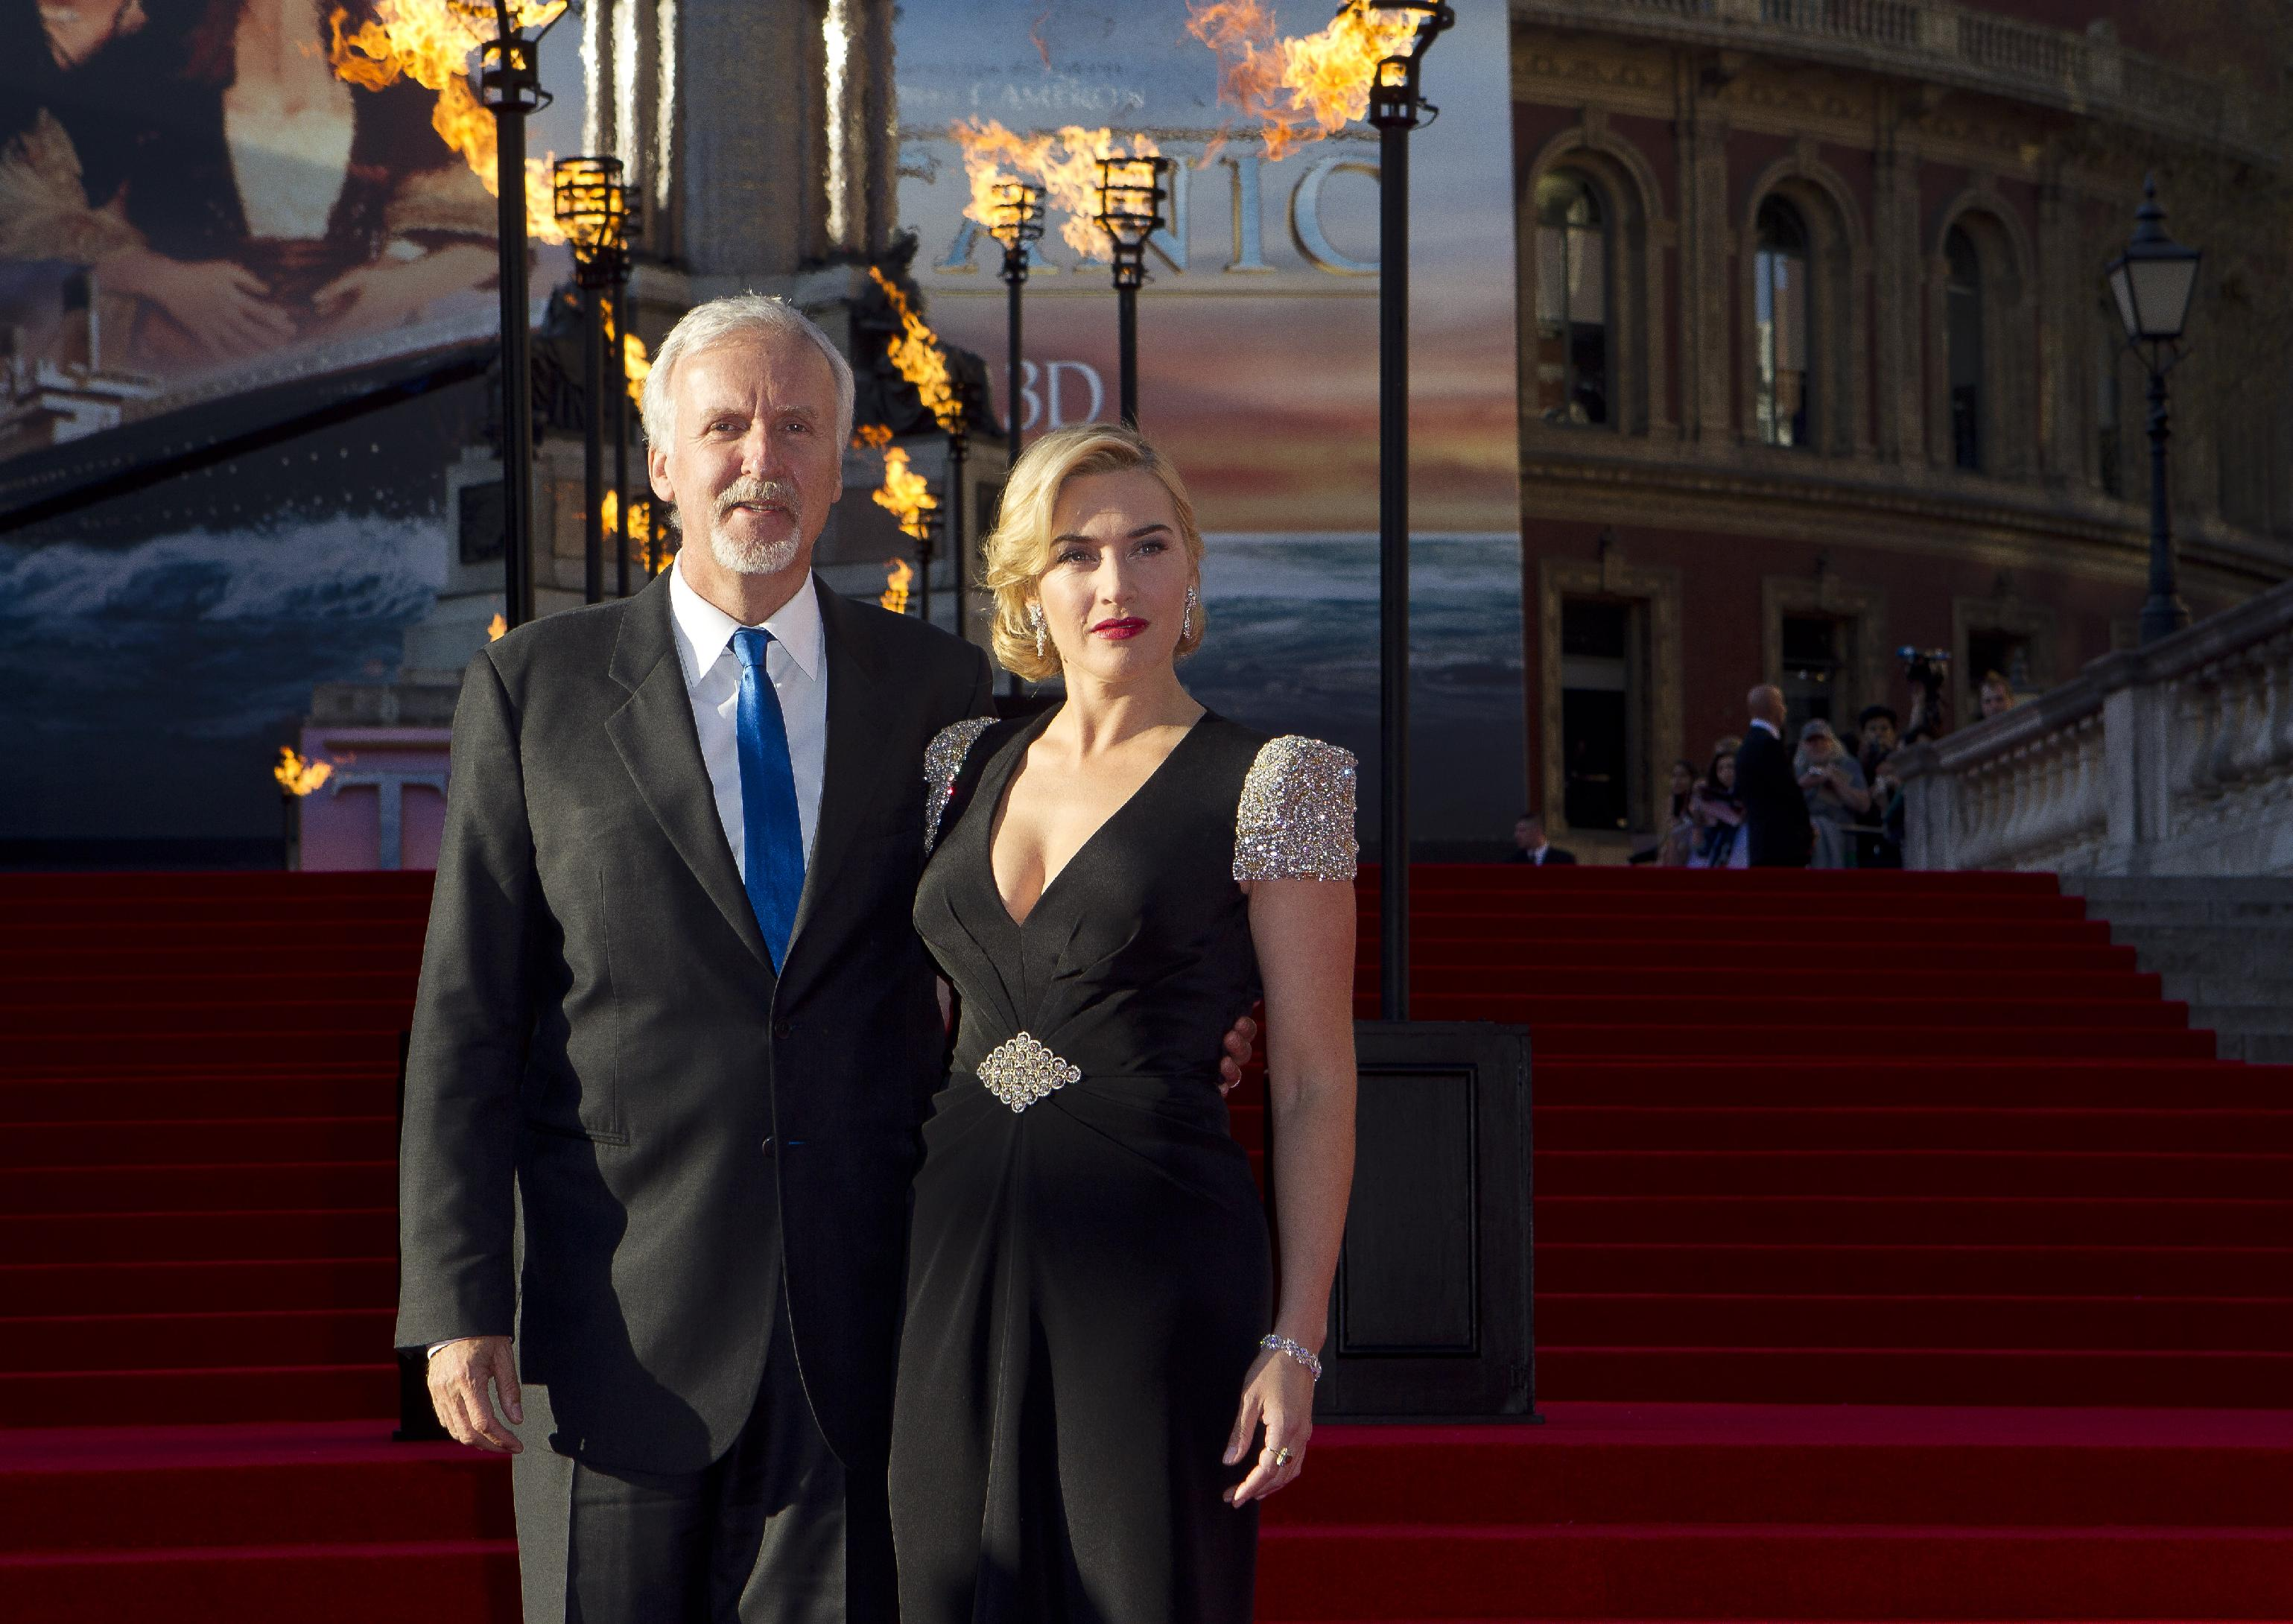 Director James Cameron, left, and actress Kate Winslet arrive at the 'Titanic 3D' UK film premiere at the Royal Albert Hall in Kensington, West London, Tuesday, March 27, 2012. The re-launch of the Titanic 3D version comes 15 years after the film was a huge box office hit. (AP Photo/Joel Ryan)